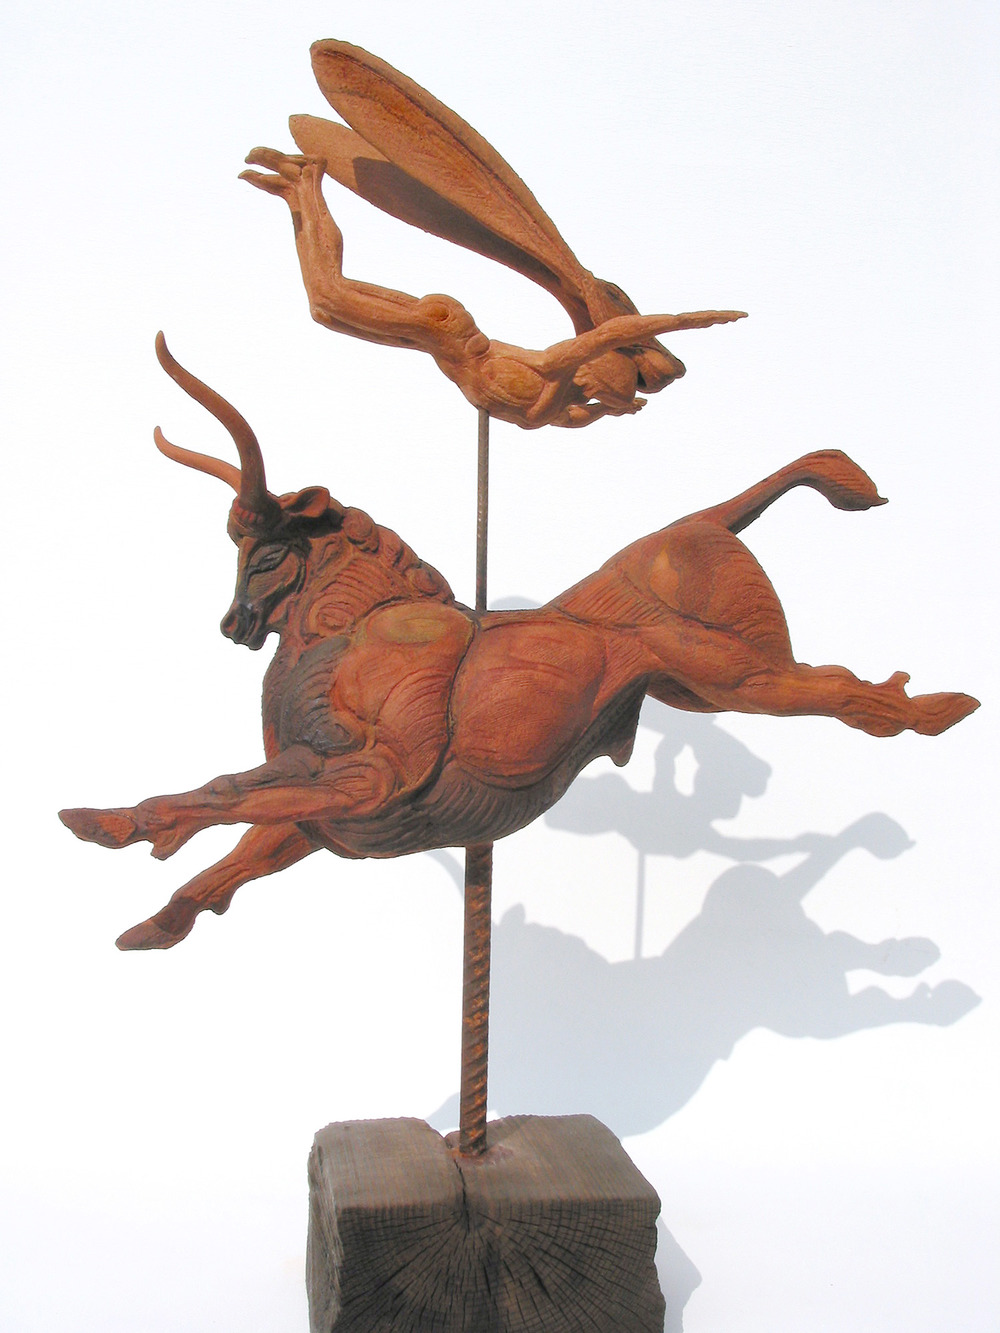 Minoan I – Haredevil   ©  93cm high x 70cm wide  Unique  This bull would make an ancient Cretan bull-acrobat feel at home, but this is a leap into fantasy: this daredevil, hare-masked figure is flying into Lewis Carroll's Wonderland.